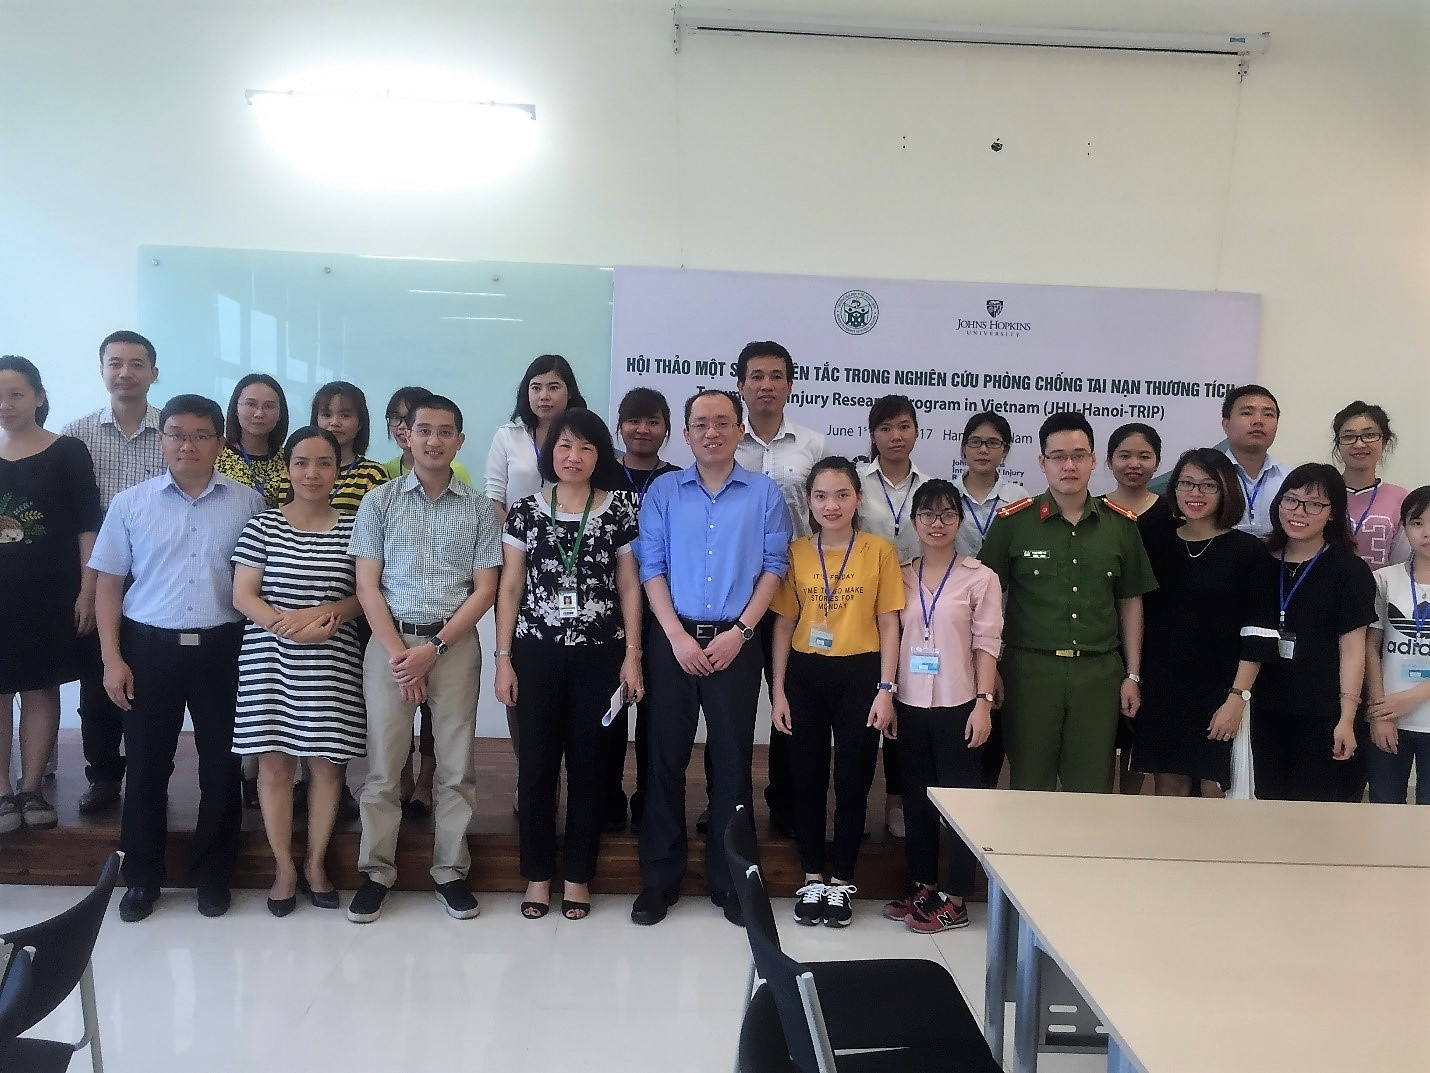 Workshop with Hanoi School of Public Health